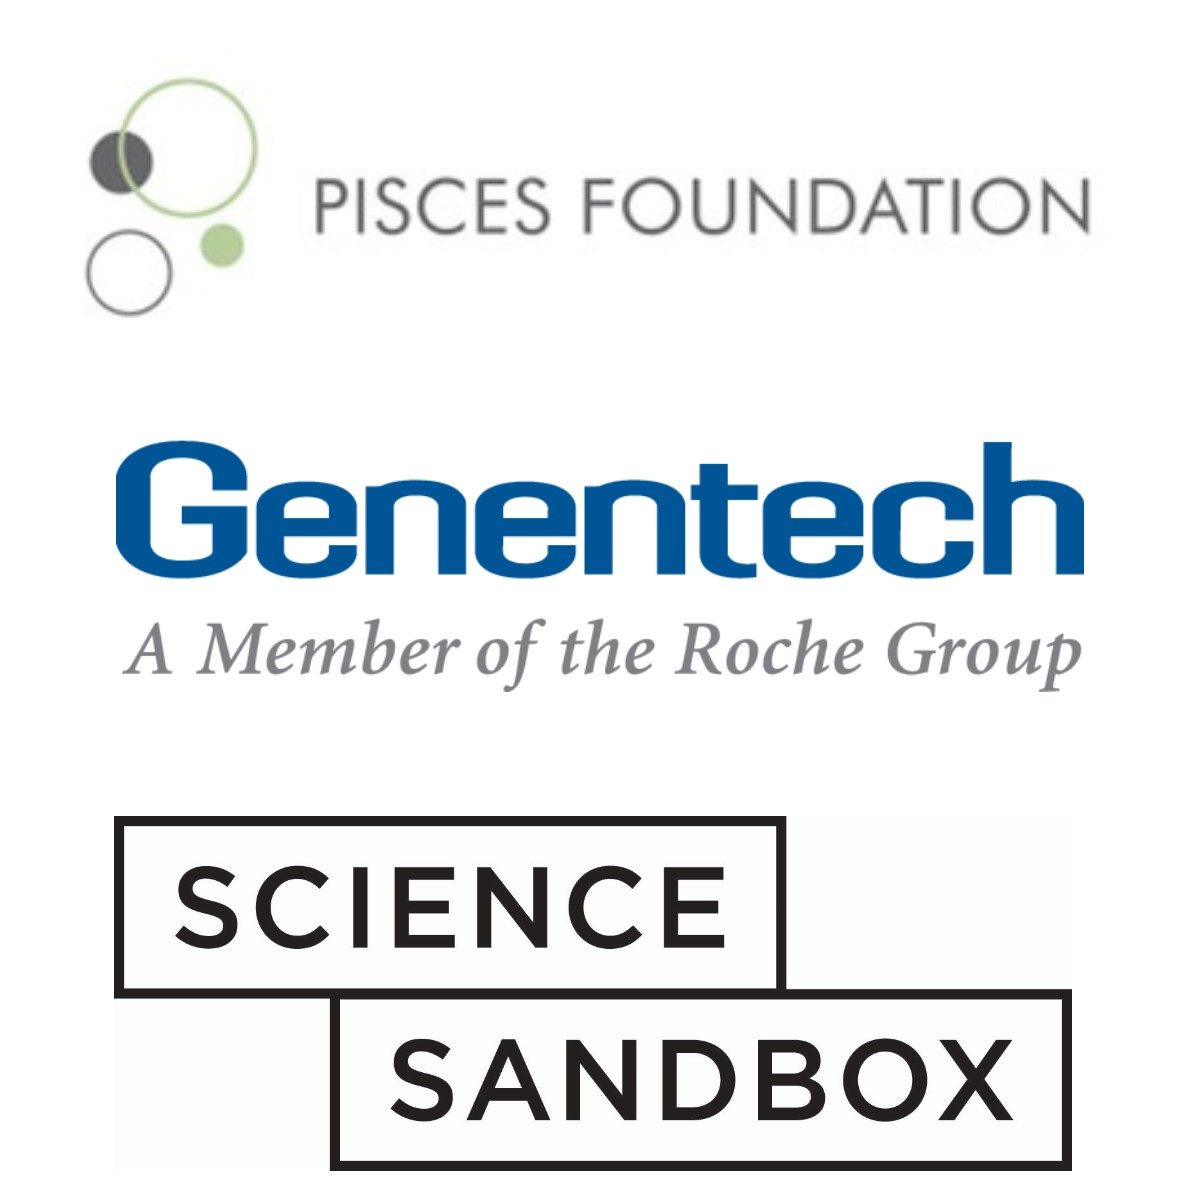 Pisces Foundation, Genentech, Science Sandbox logos